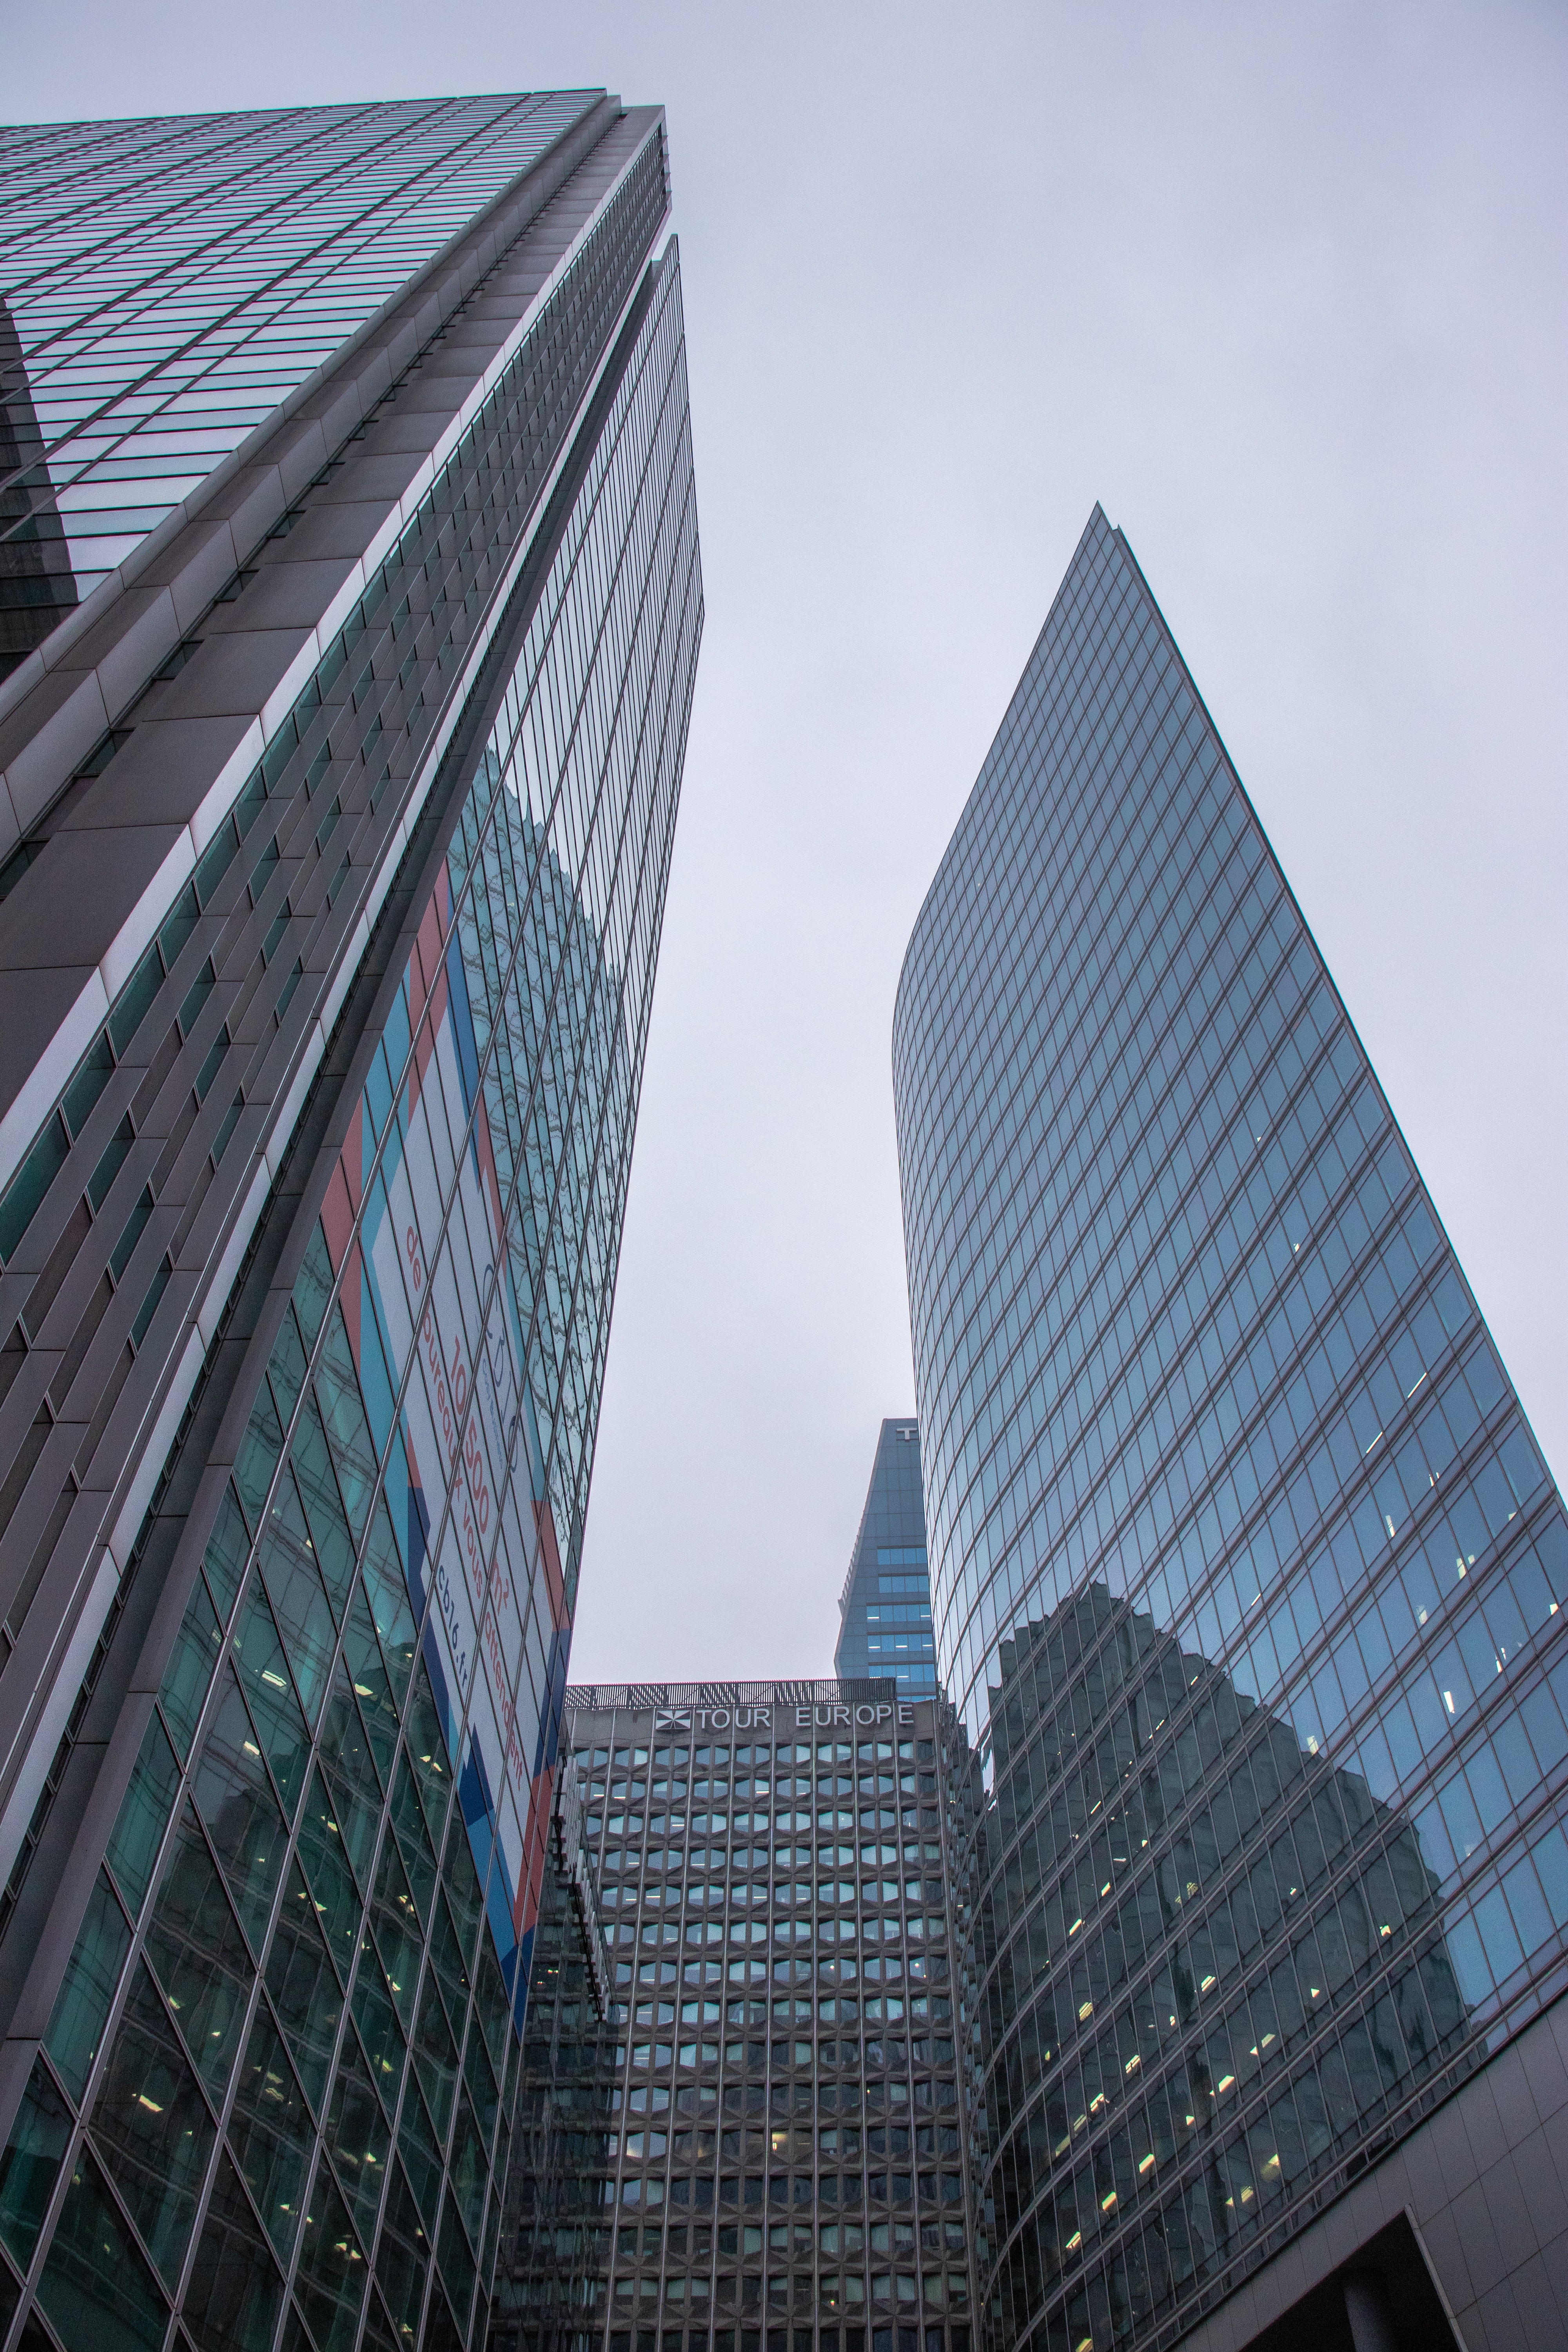 curtain wall buildings under white sky